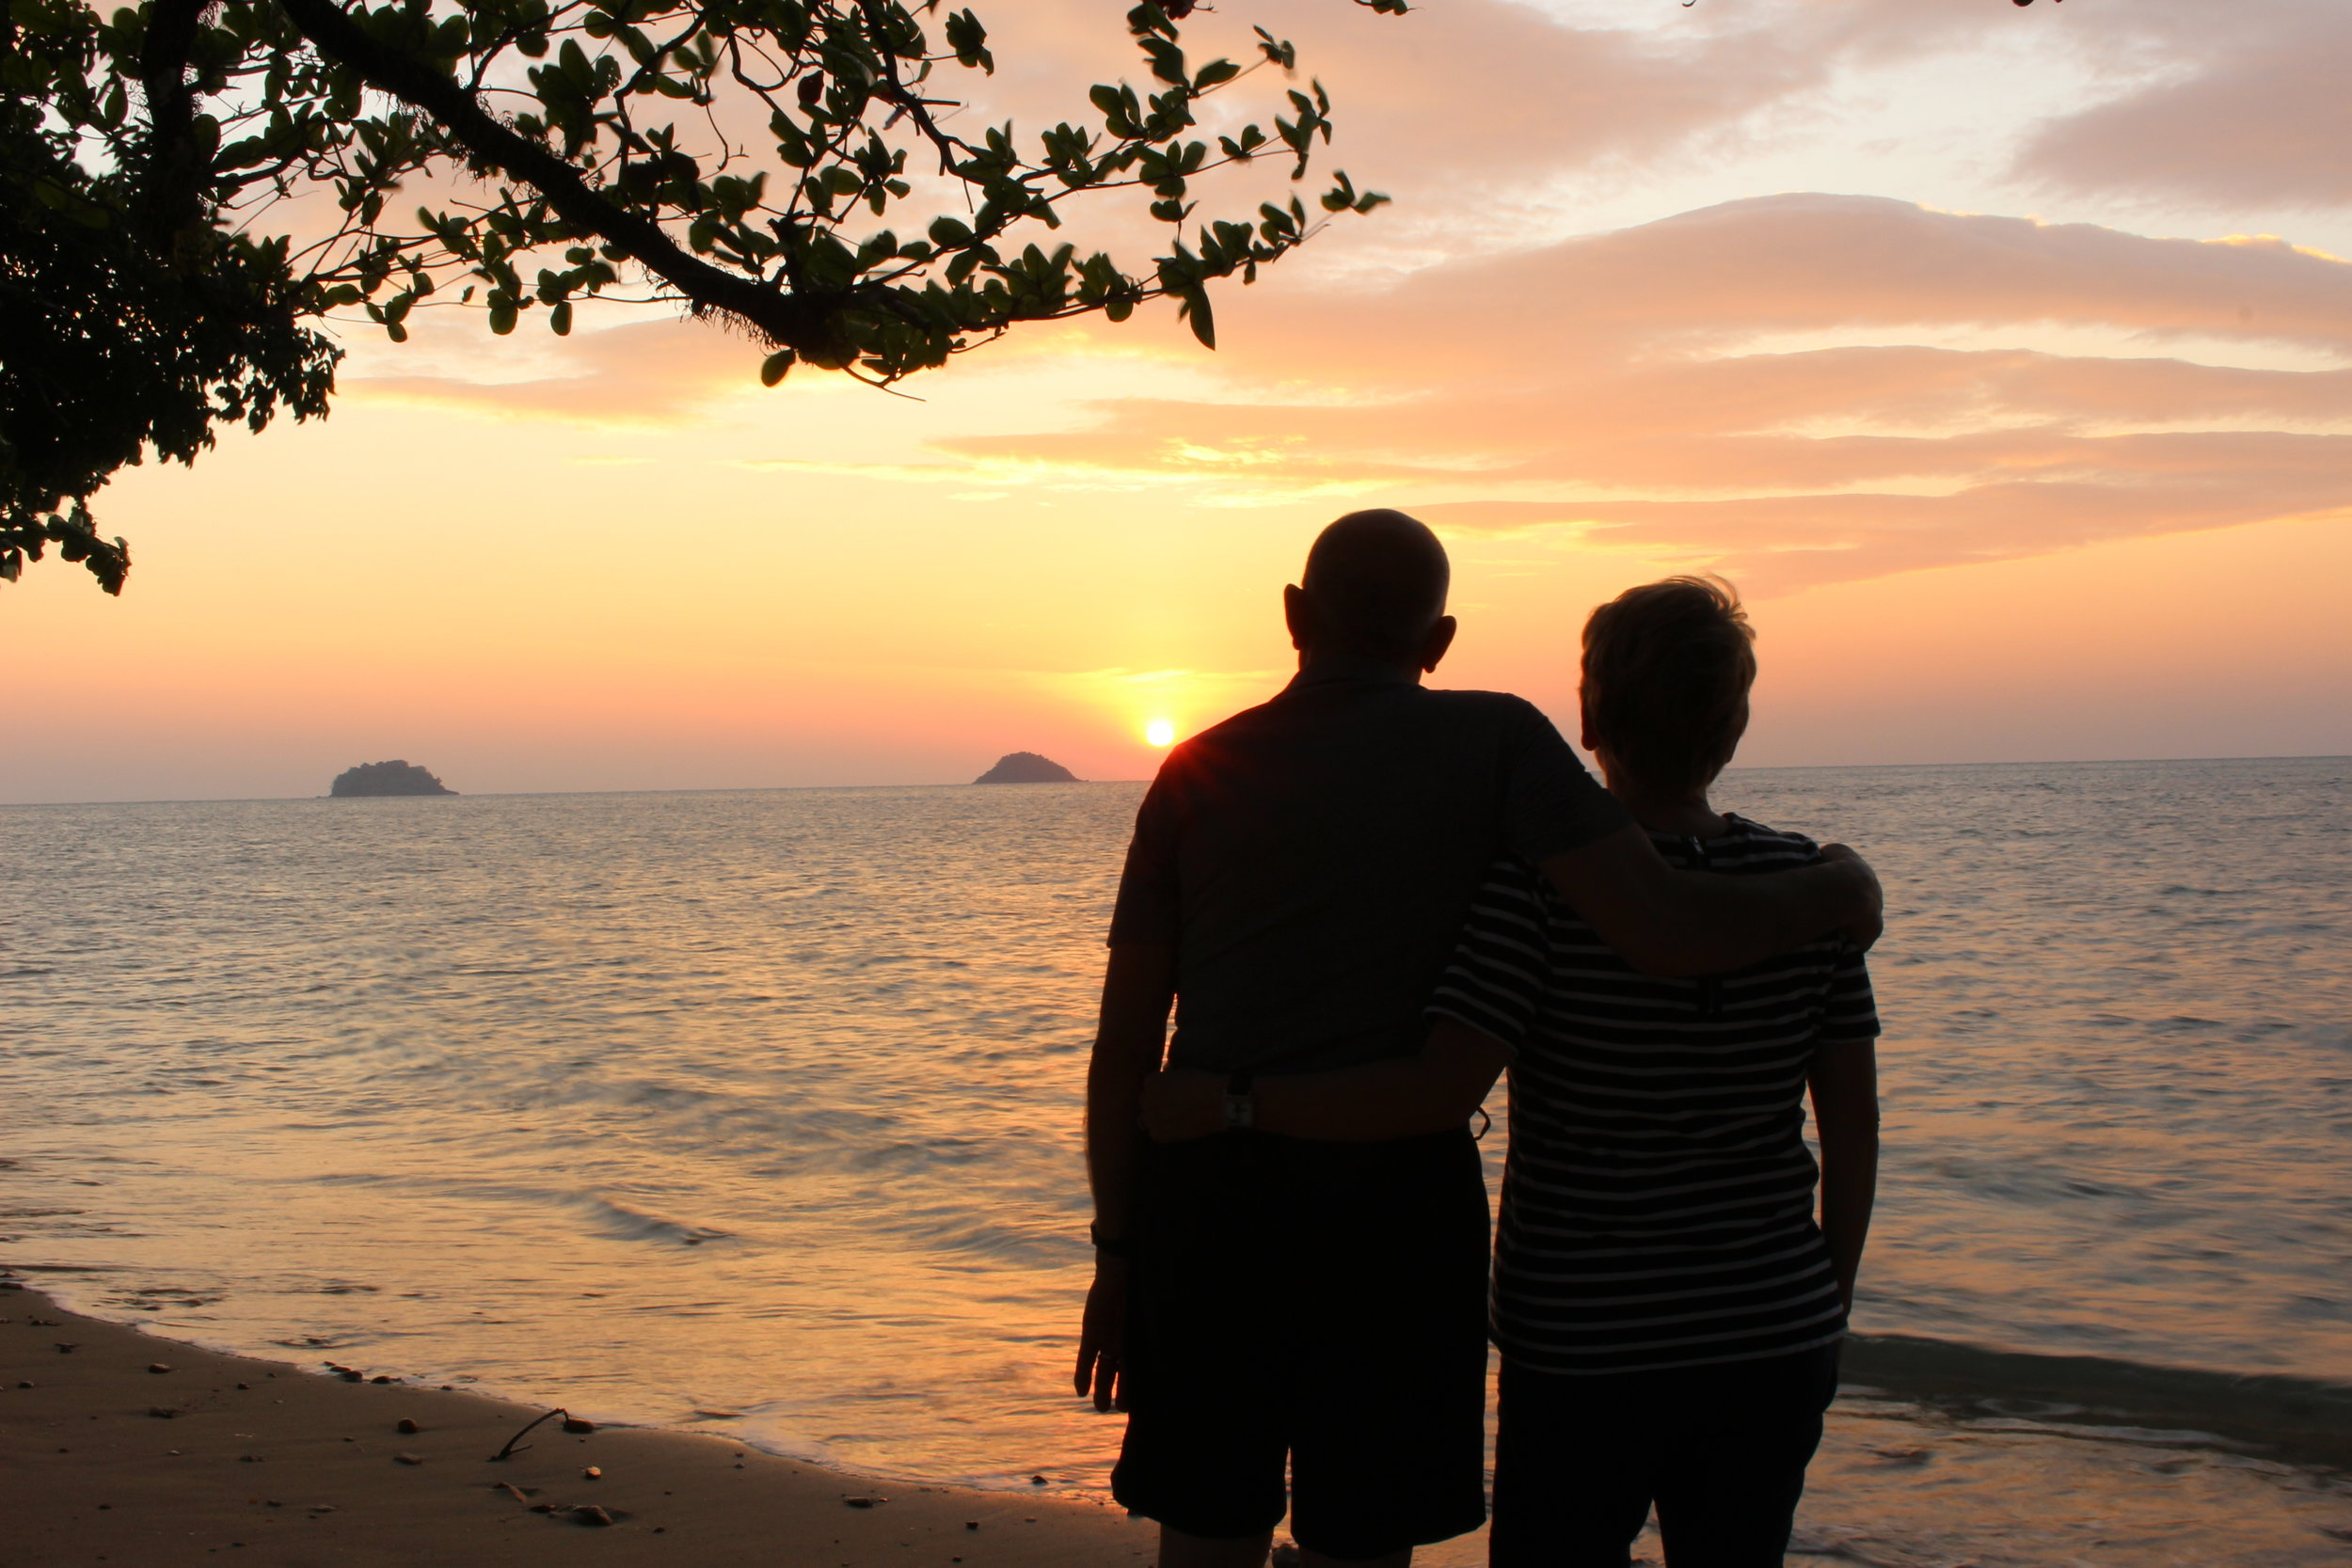 My parents watching the sunset